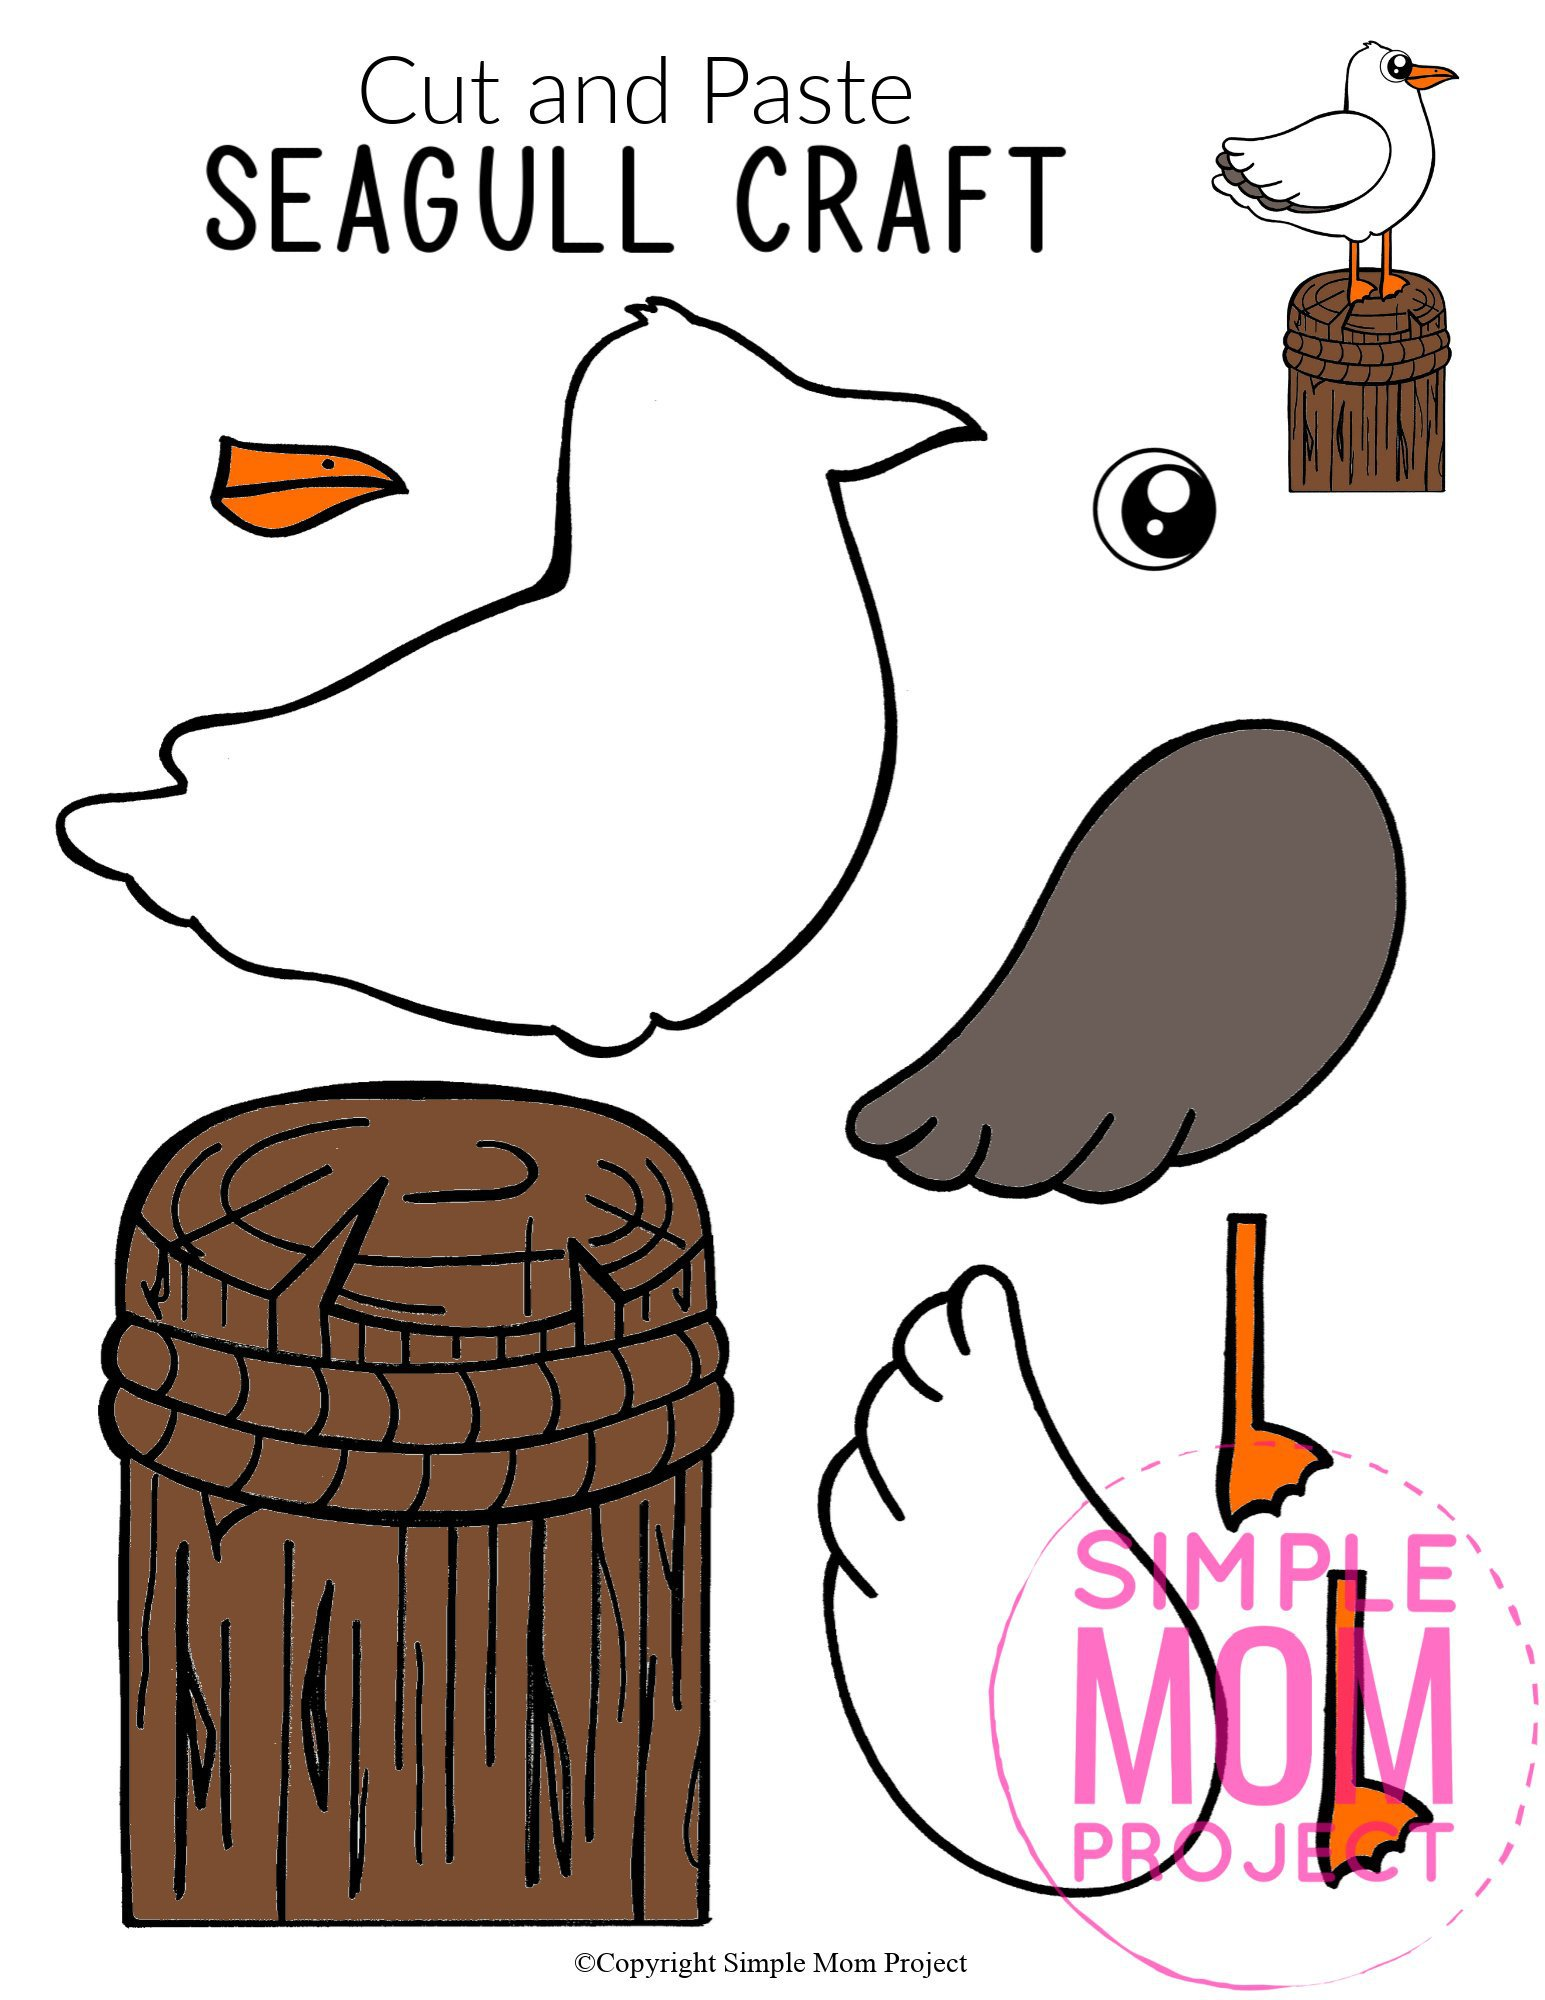 Free Printable Ocean Animal Seagull Crafts for kids of all ages, including preschoolers and toddlers